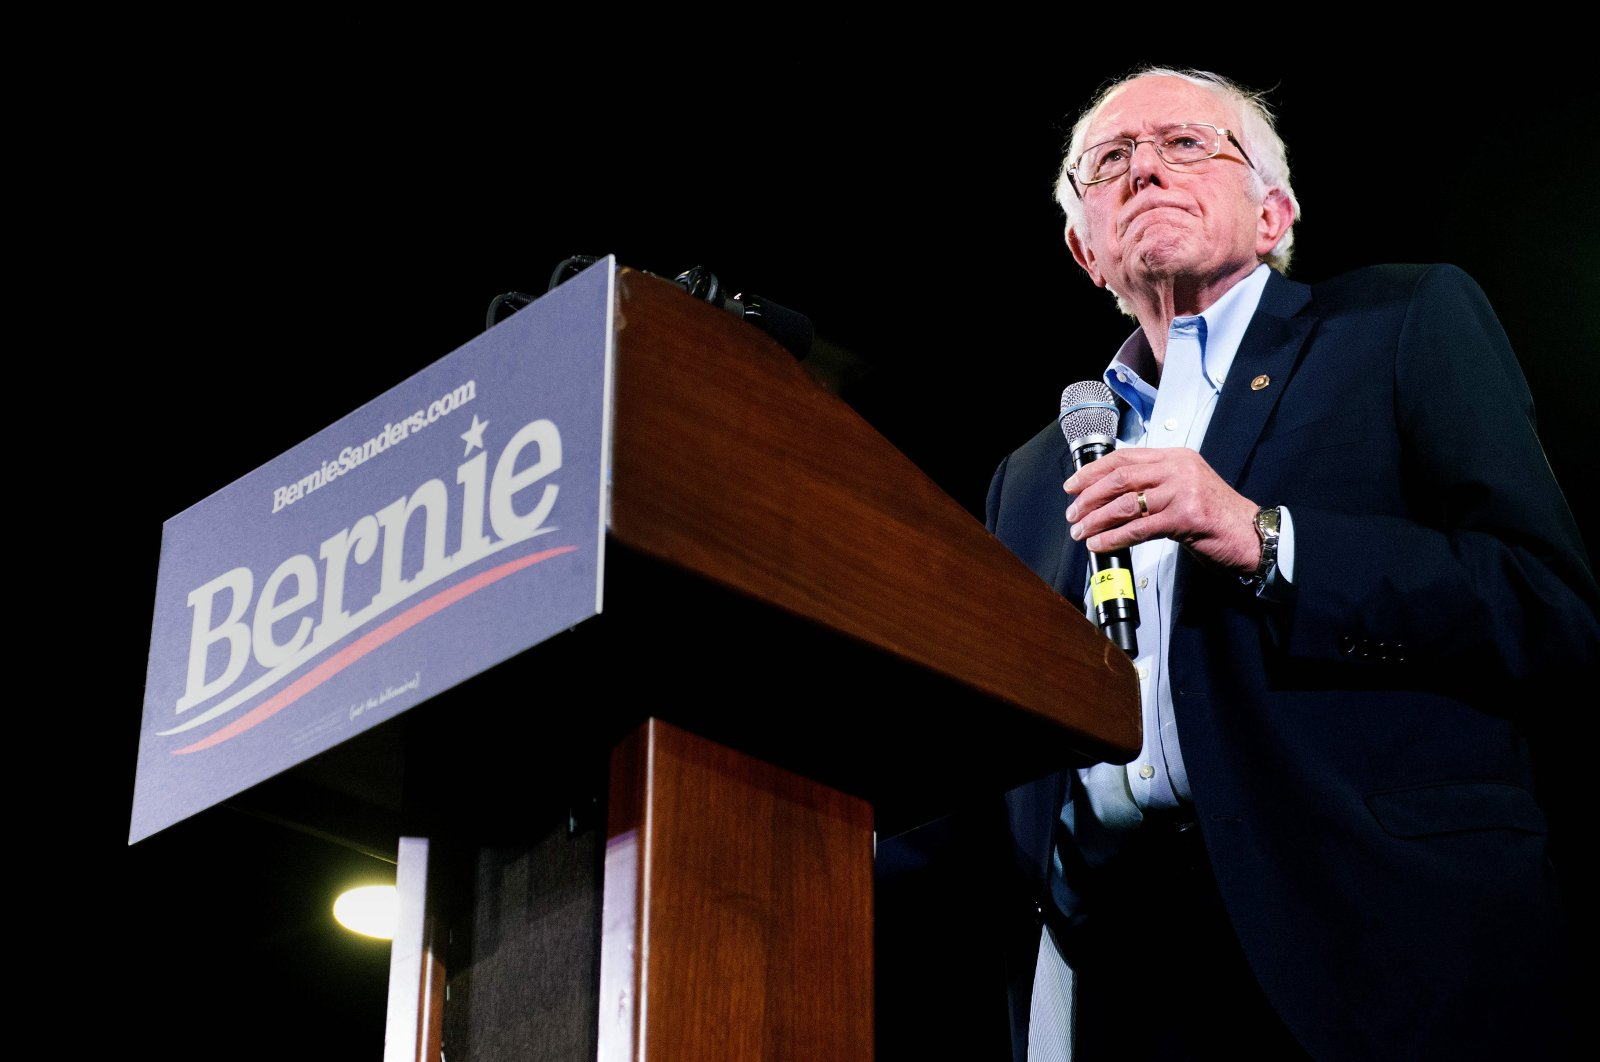 Vermont Sen. Bernie Sanders addresses supporters during a campaign rally in Denver, Colorado, Feb. 16, 2020. (AFP Photo)